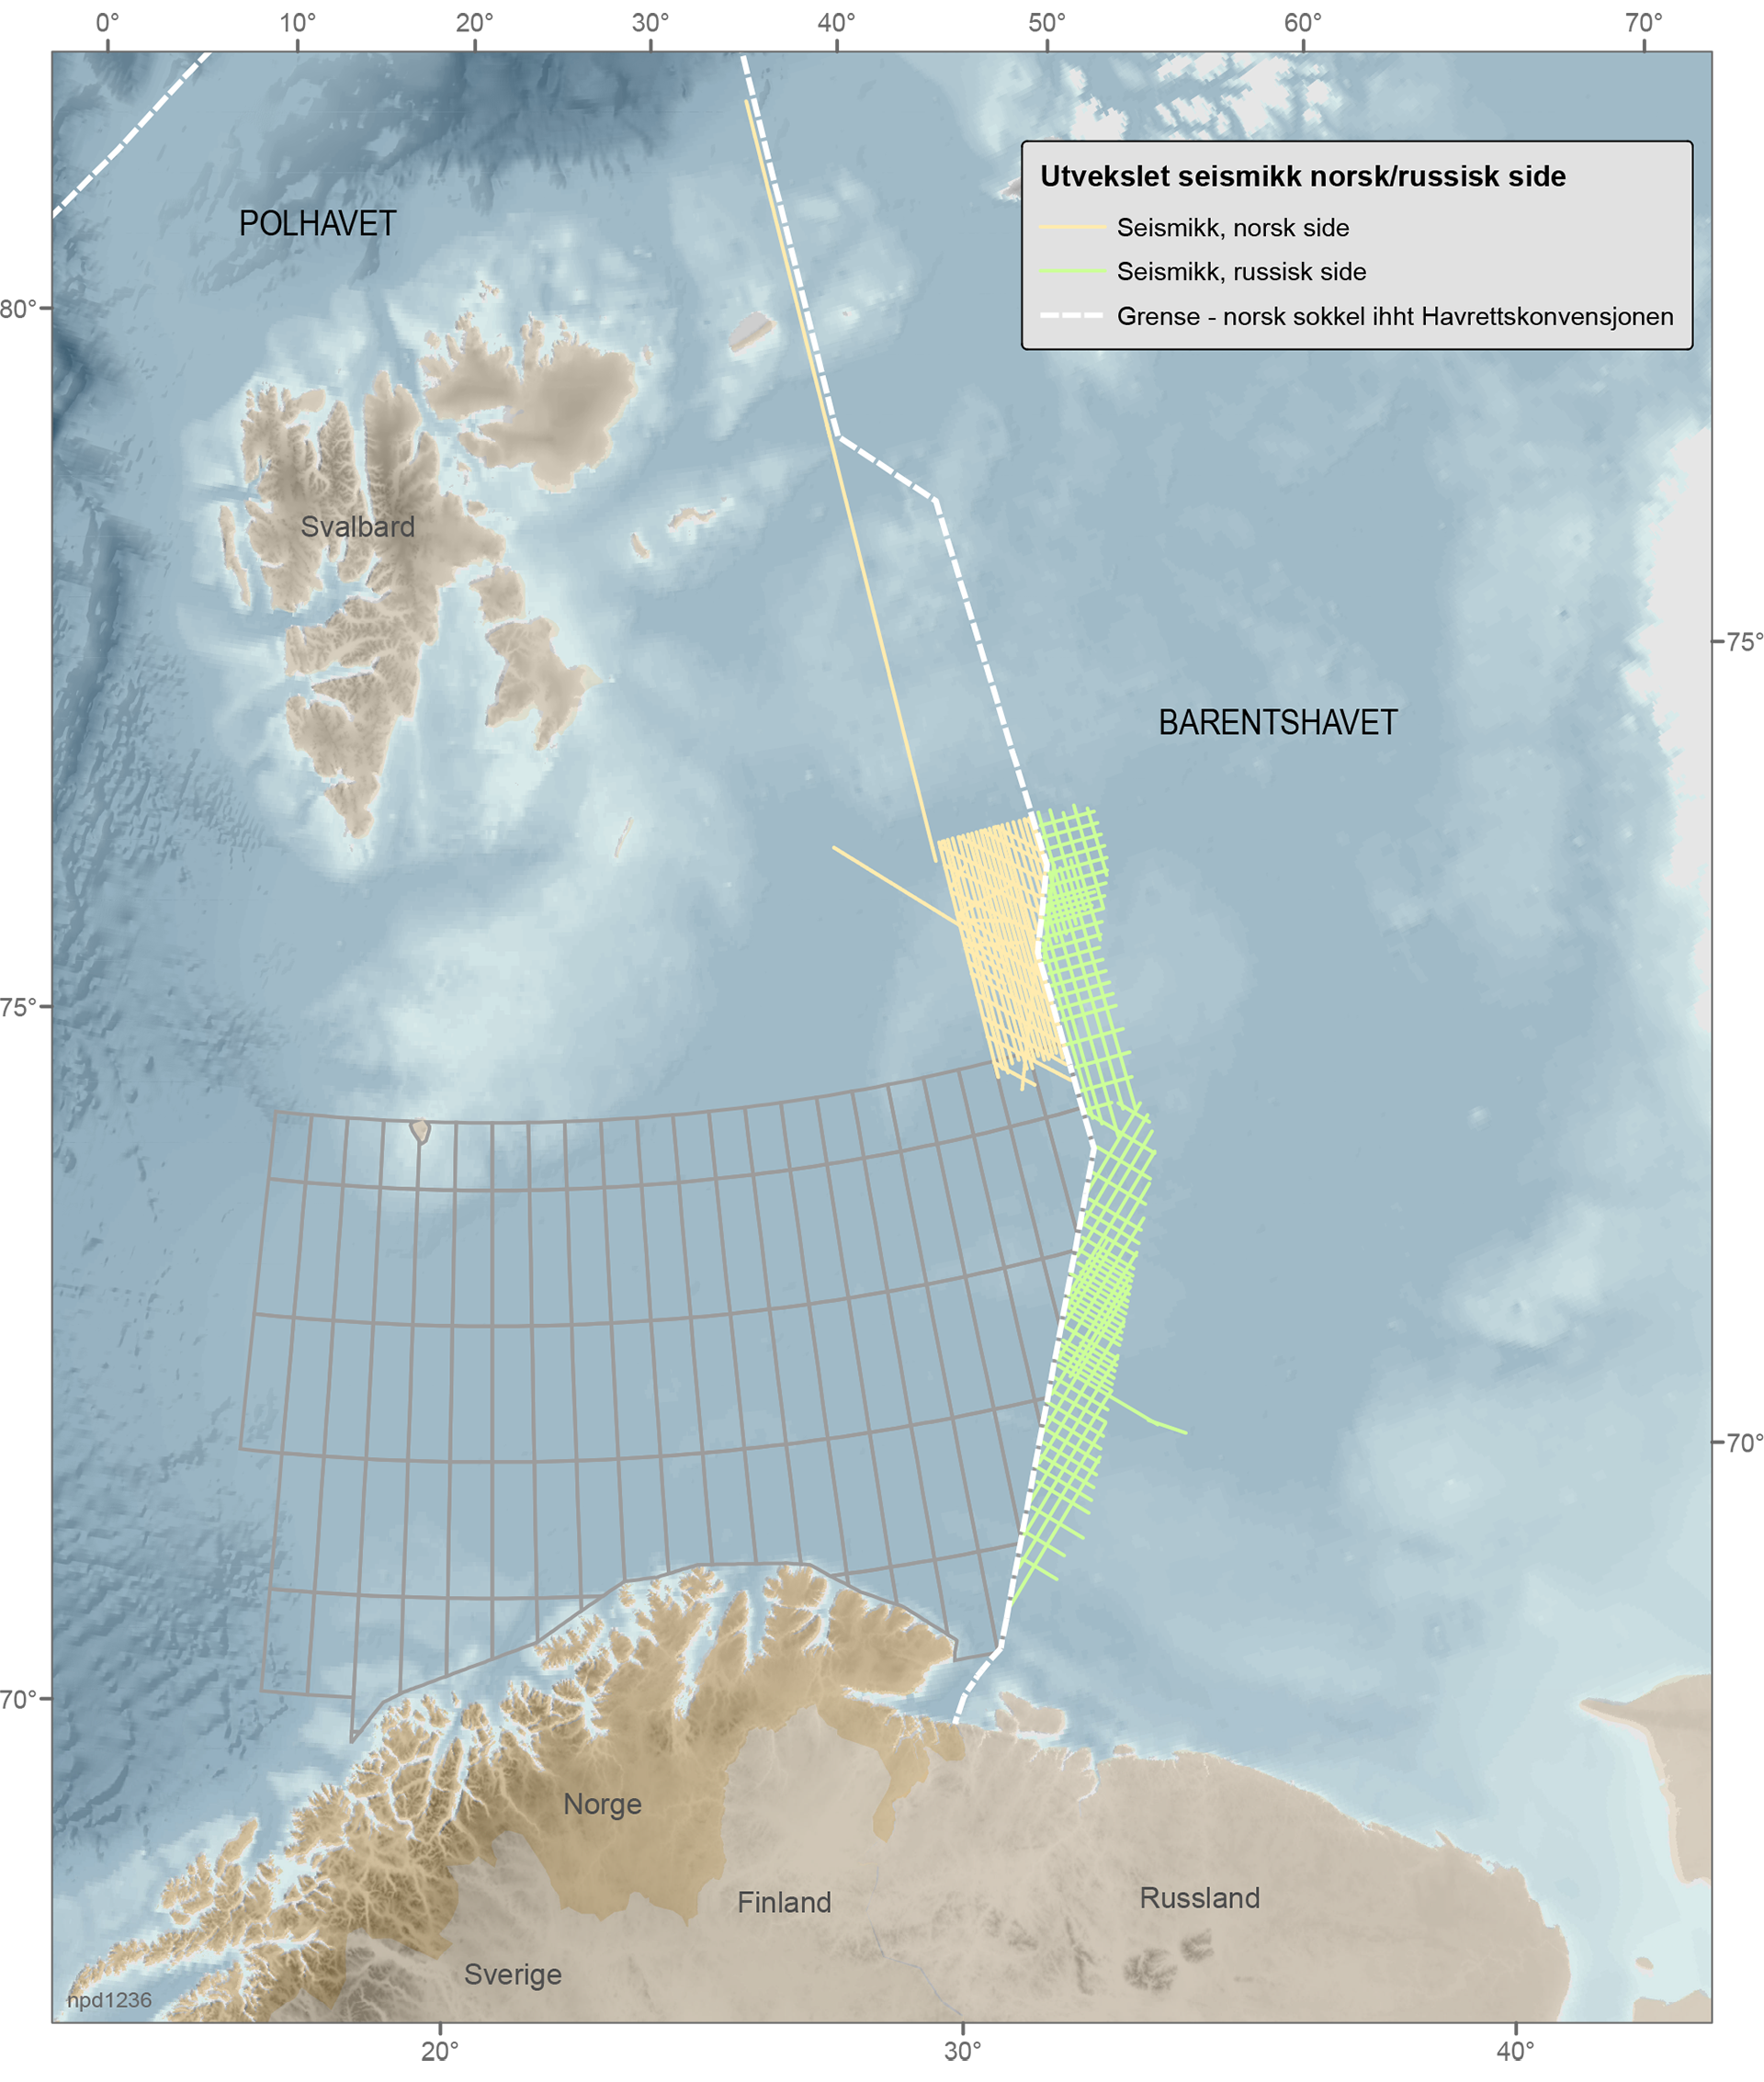 Russia and Norway exchange seismic data